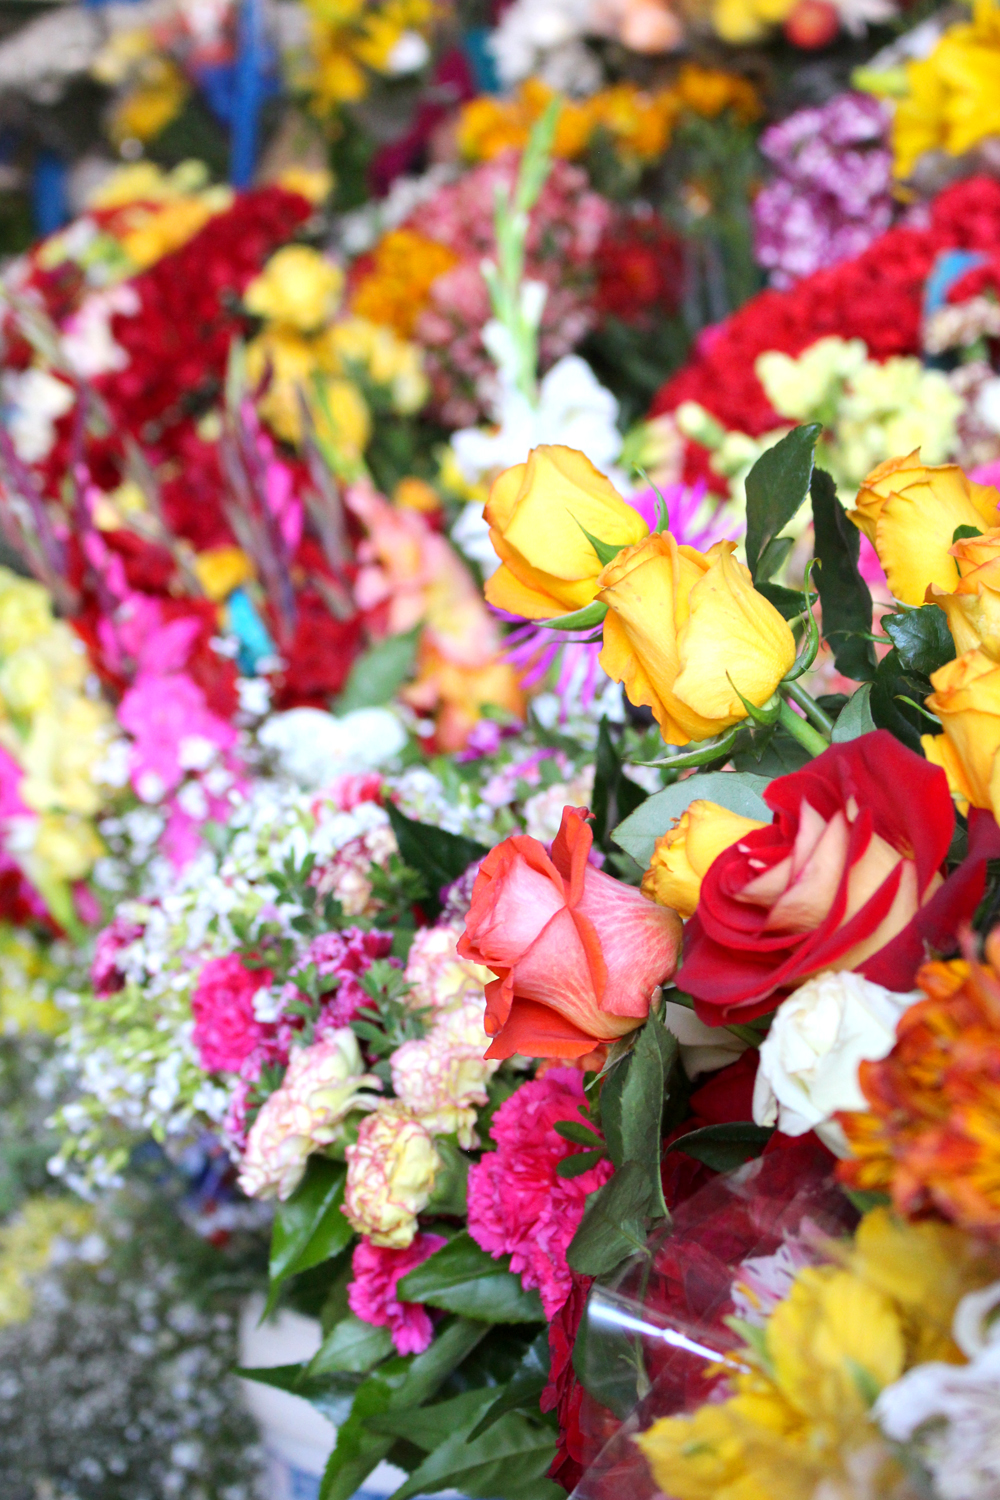 Flowers at Cusco market, Peru - lifestyle & travel blog